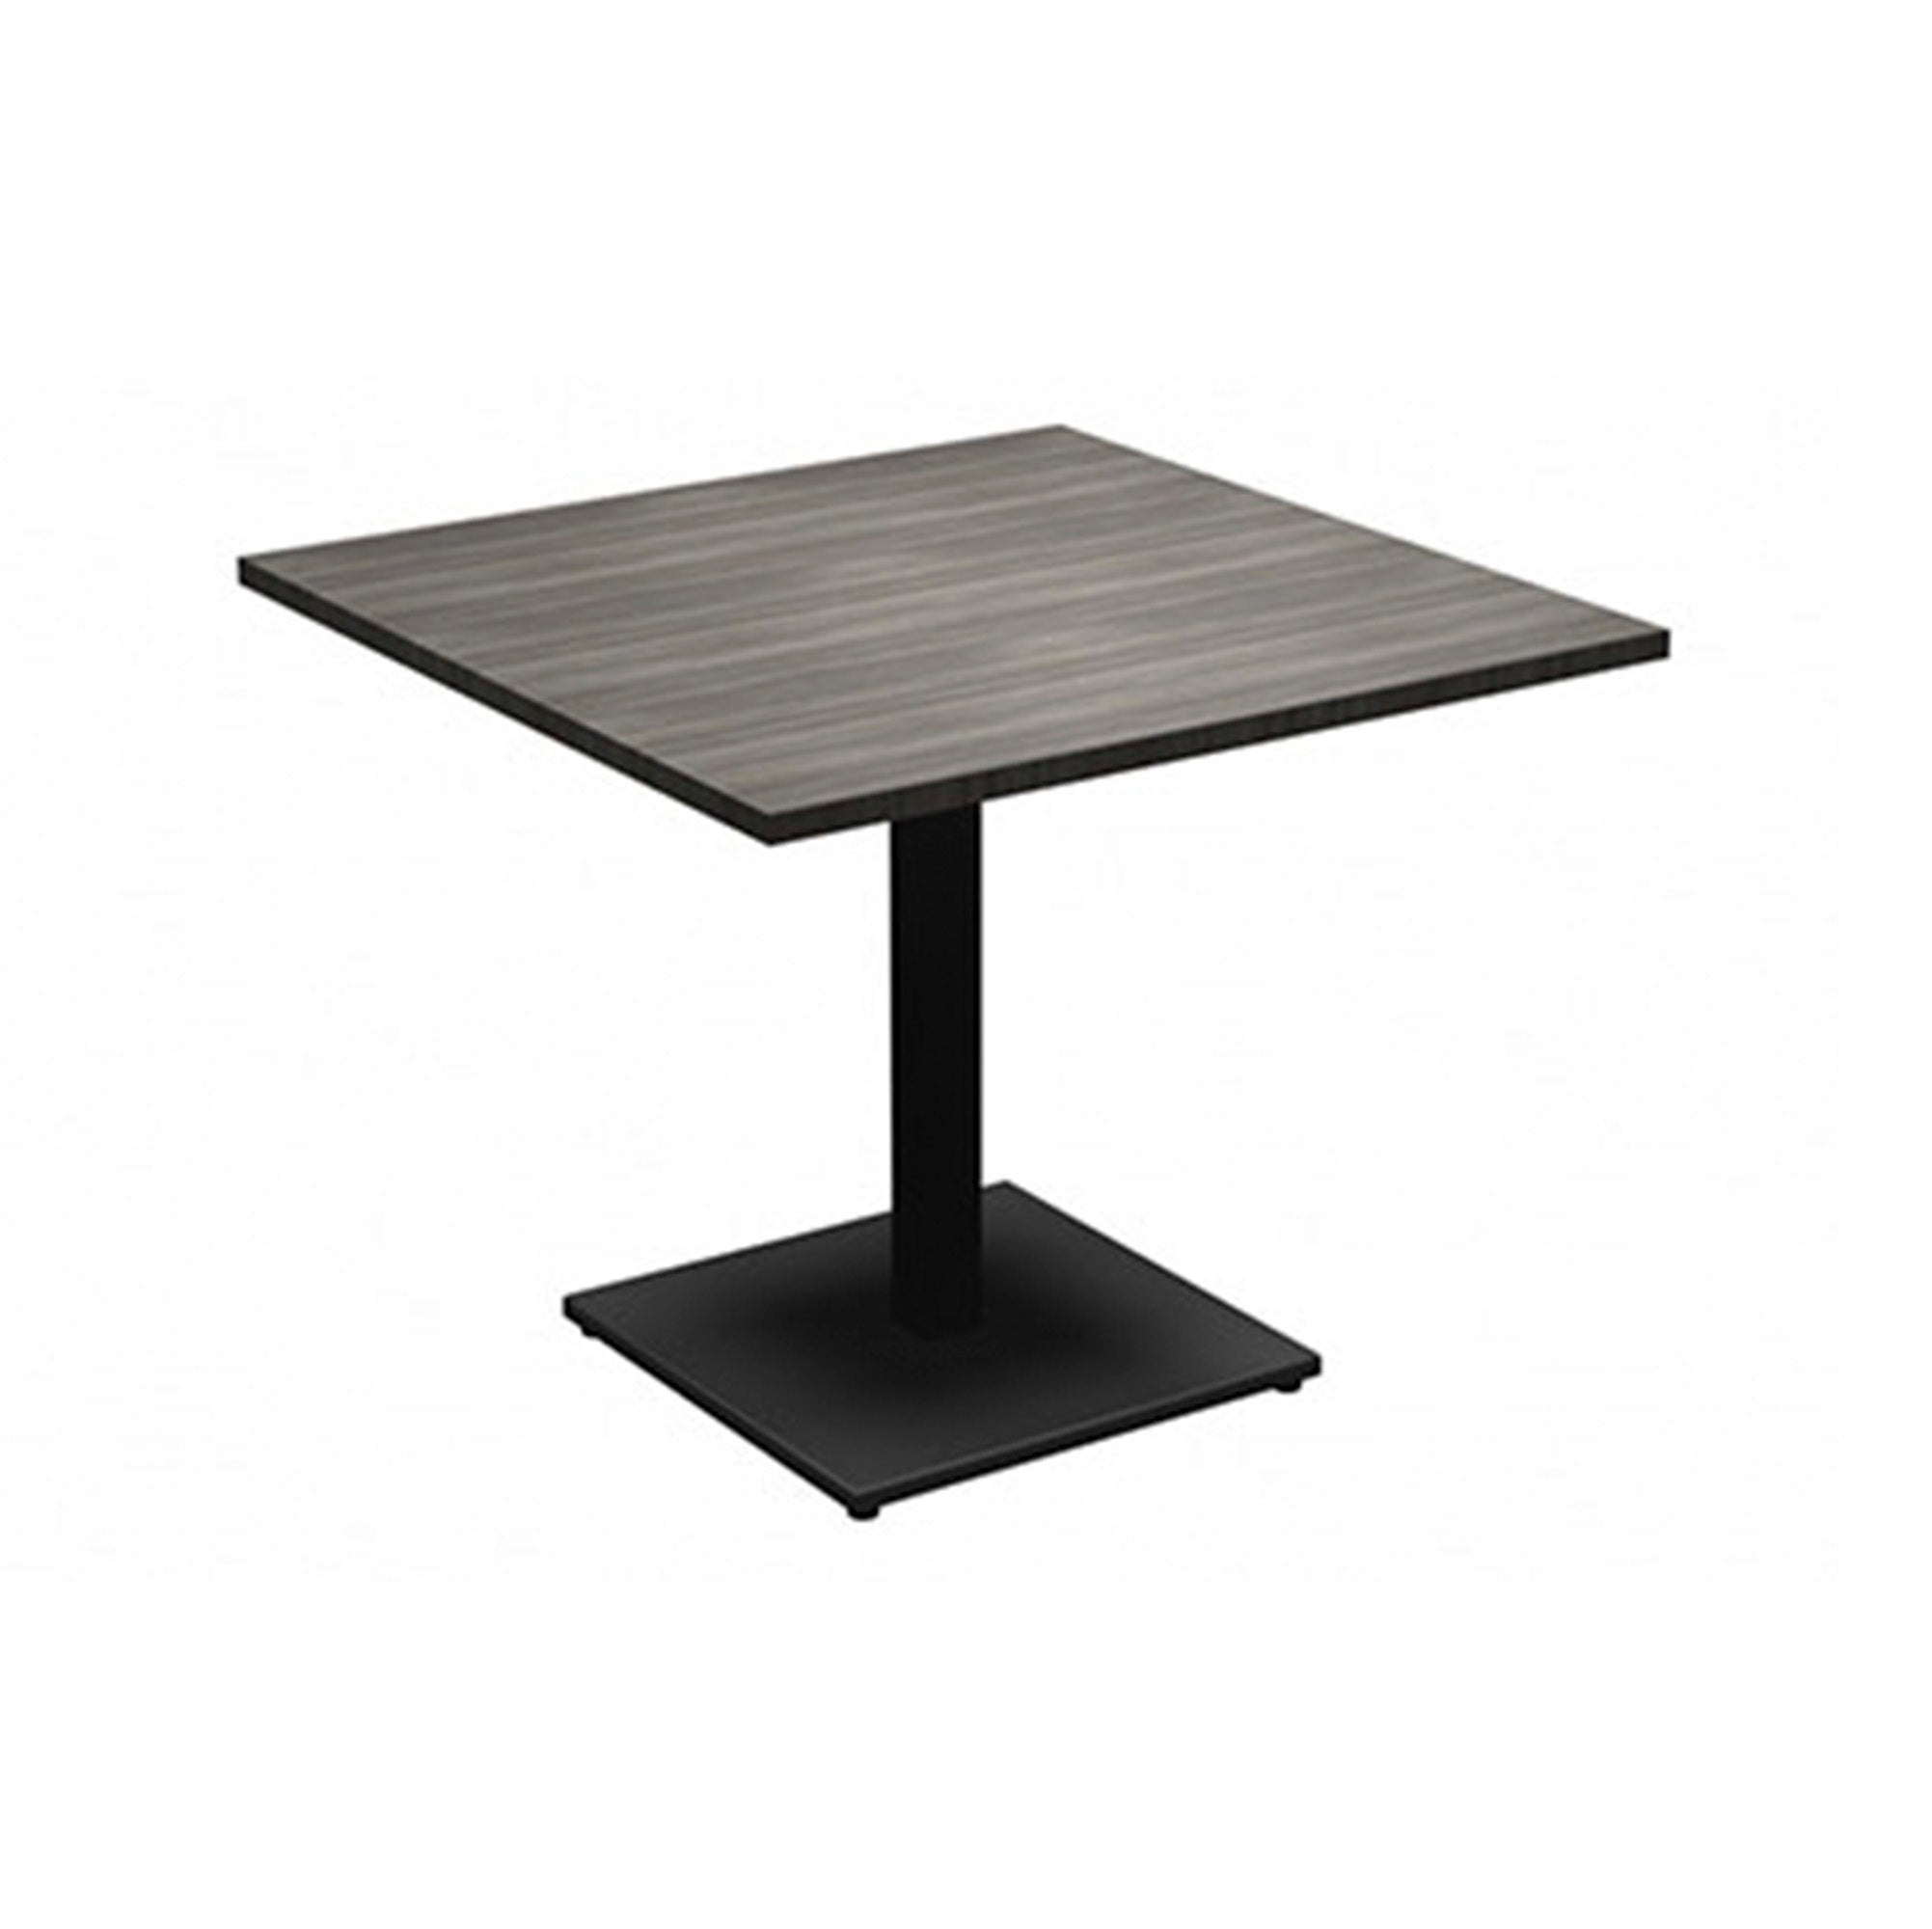 "Innovations 36"" Square Table"